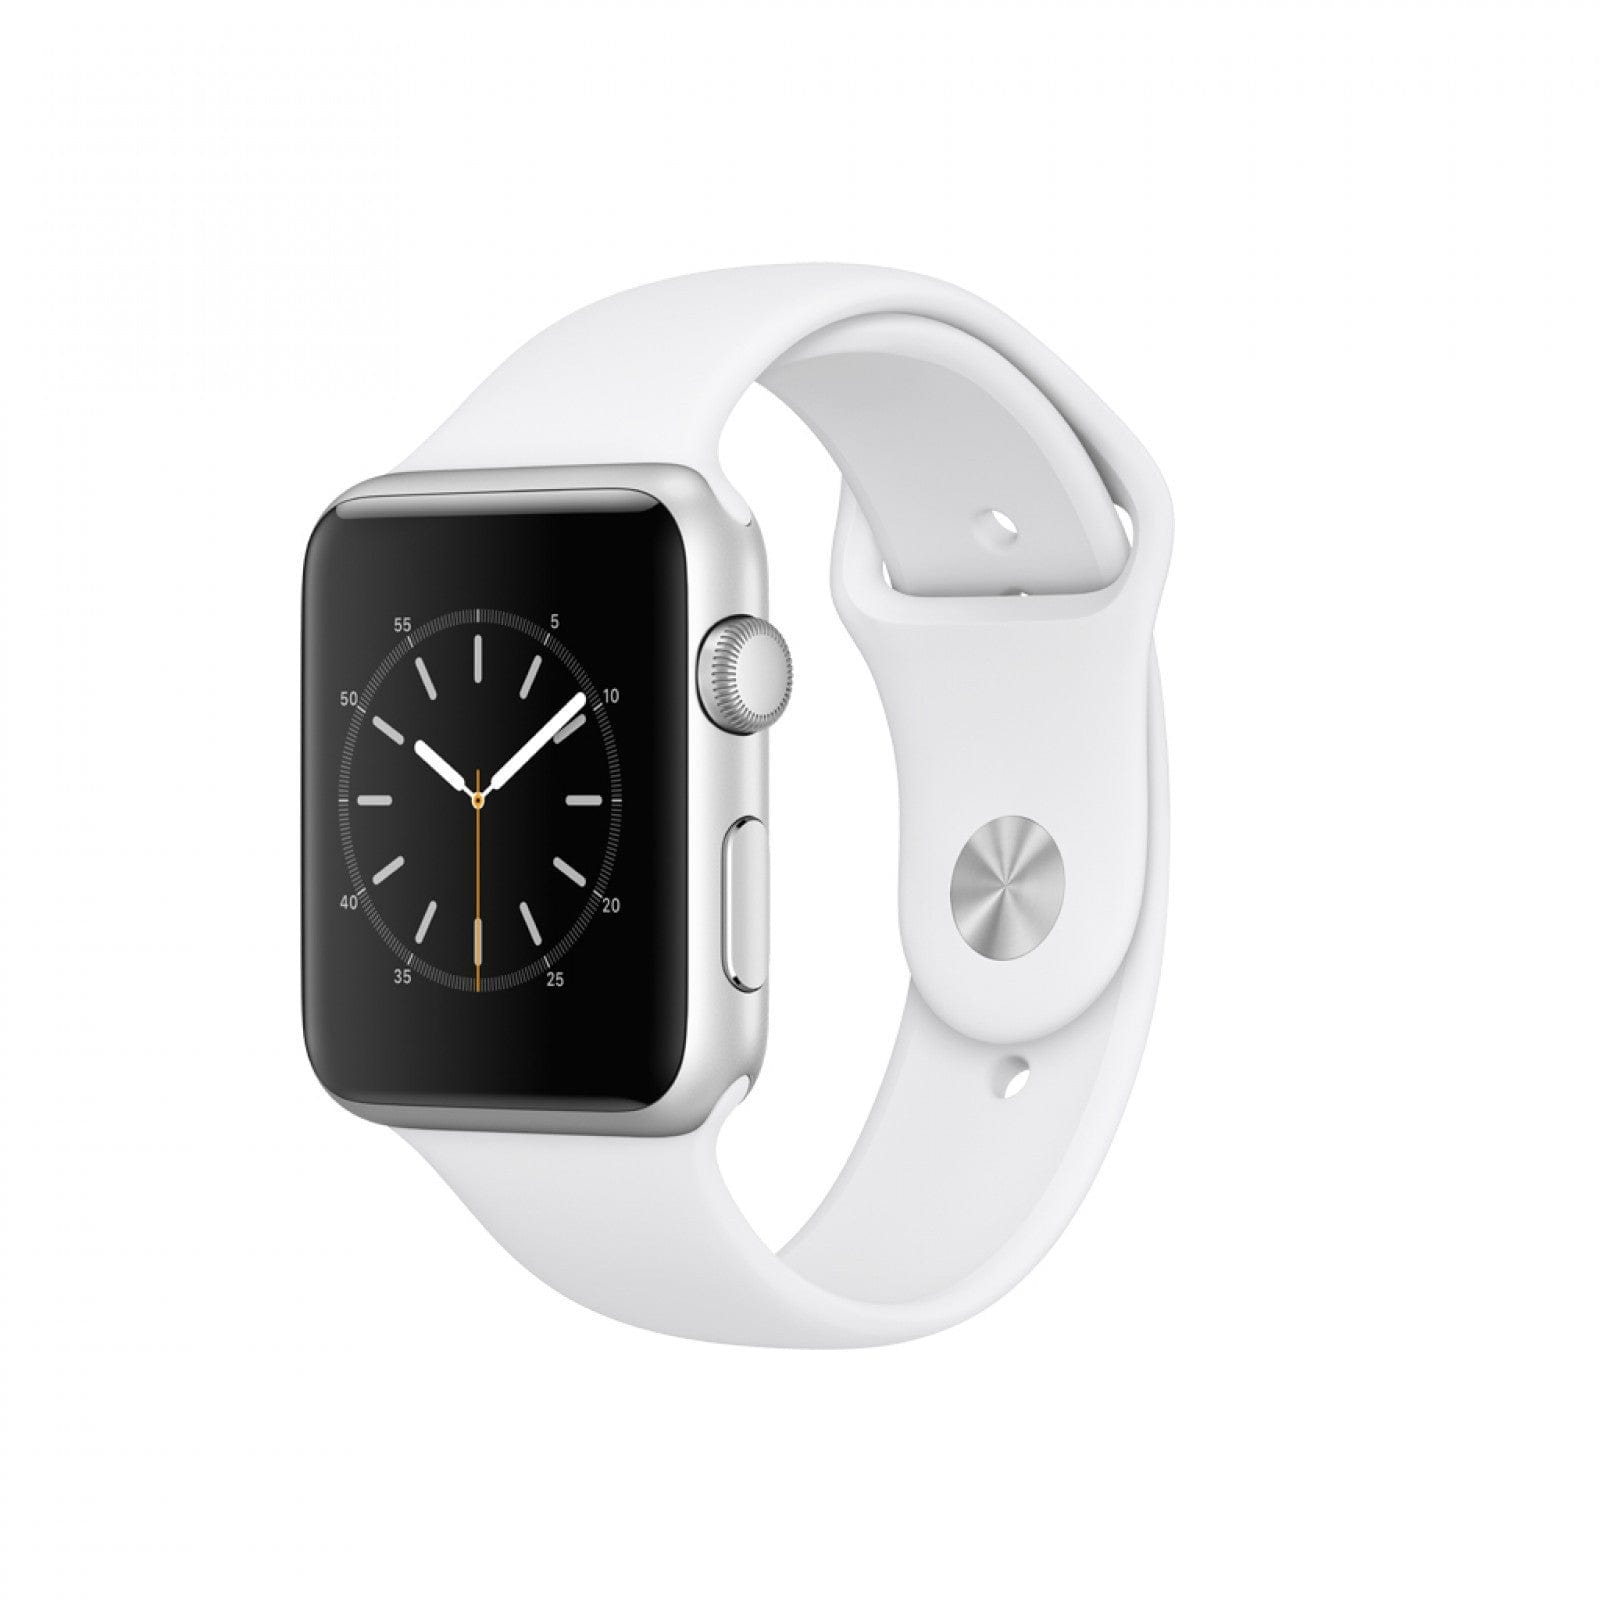 iStore smart watch 42mm Silver Aluminium Case with White Sport Band - Series 1